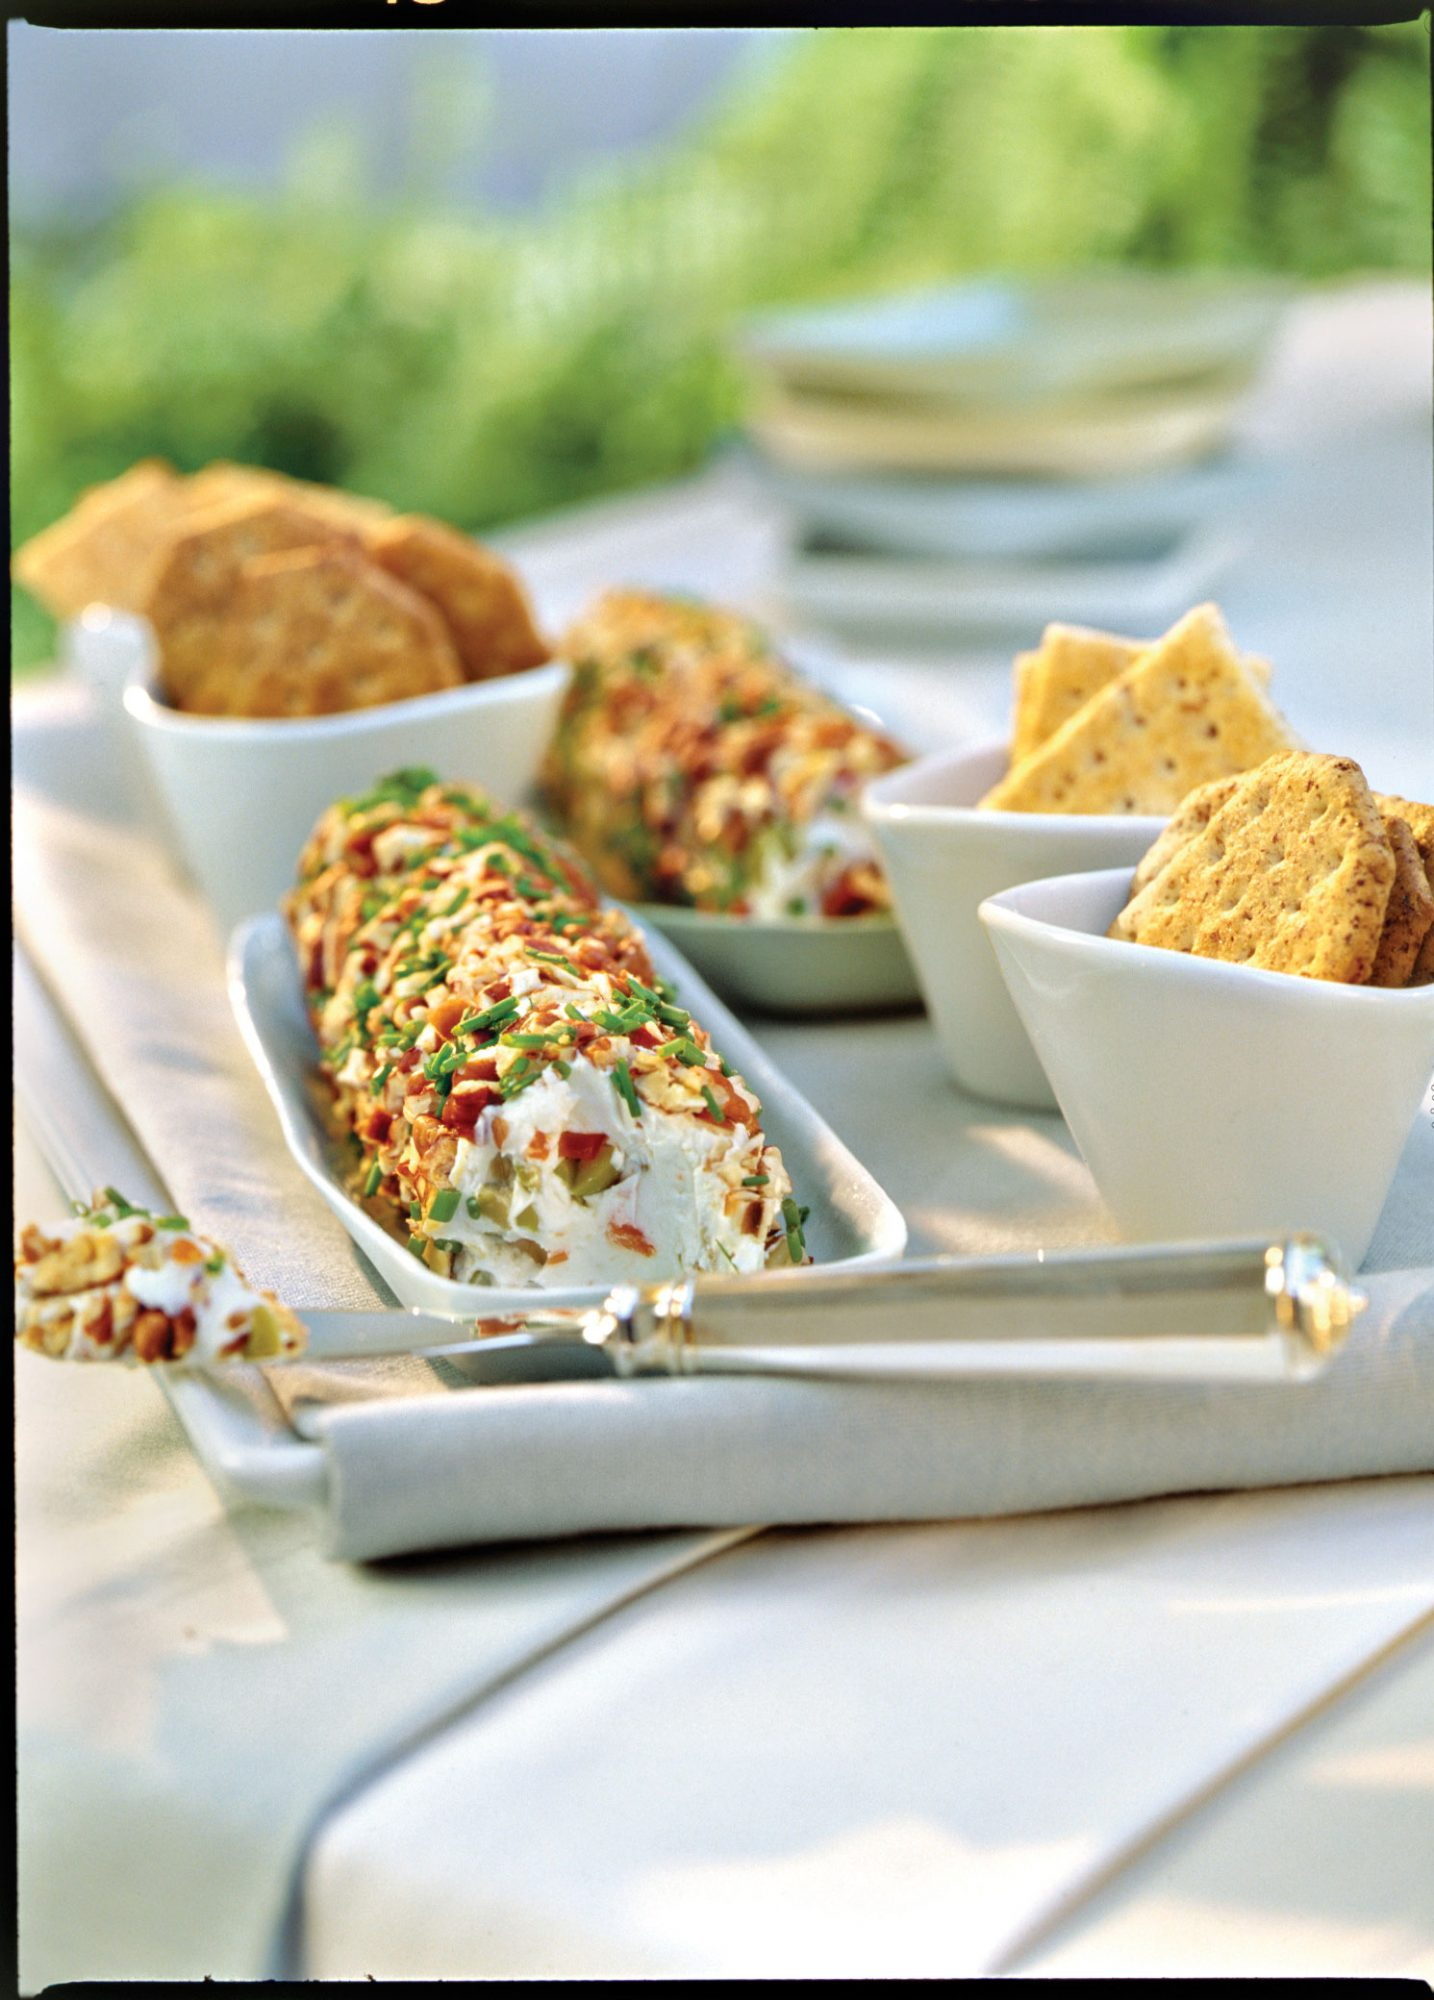 Wedding Shower Recipe Ideas: Cream Cheese-Olive Spread